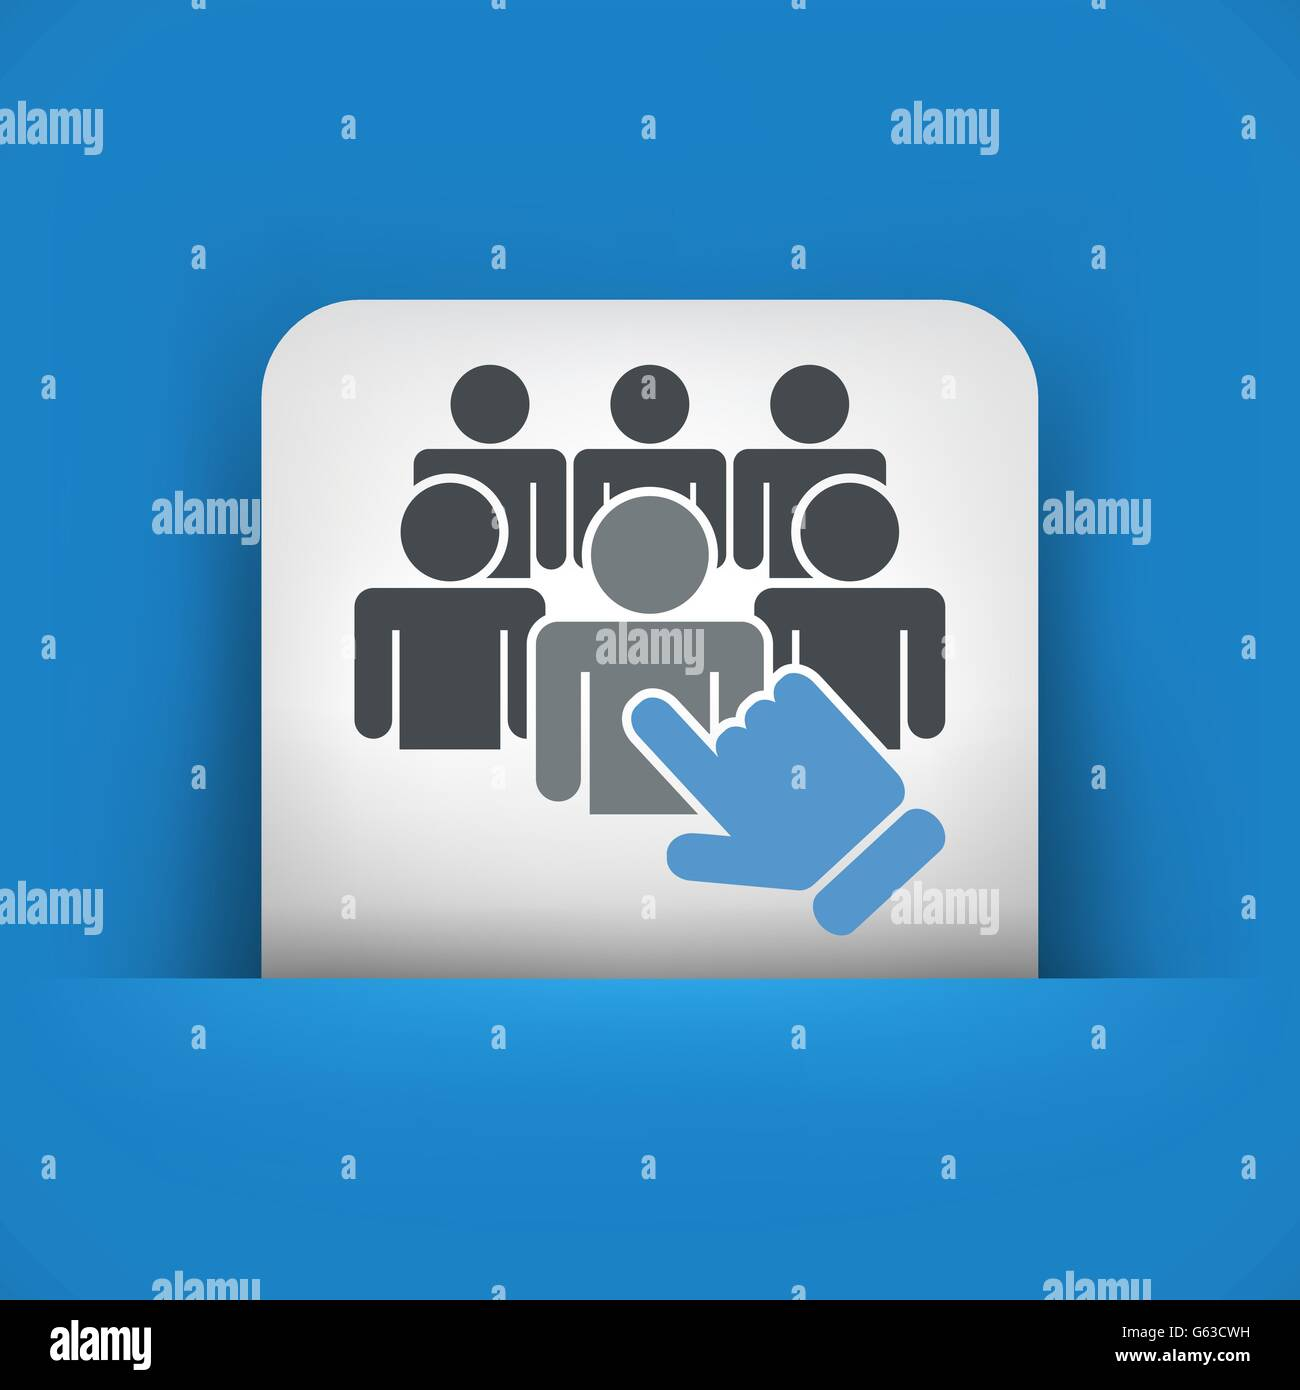 Staff selection icon Stock Vector